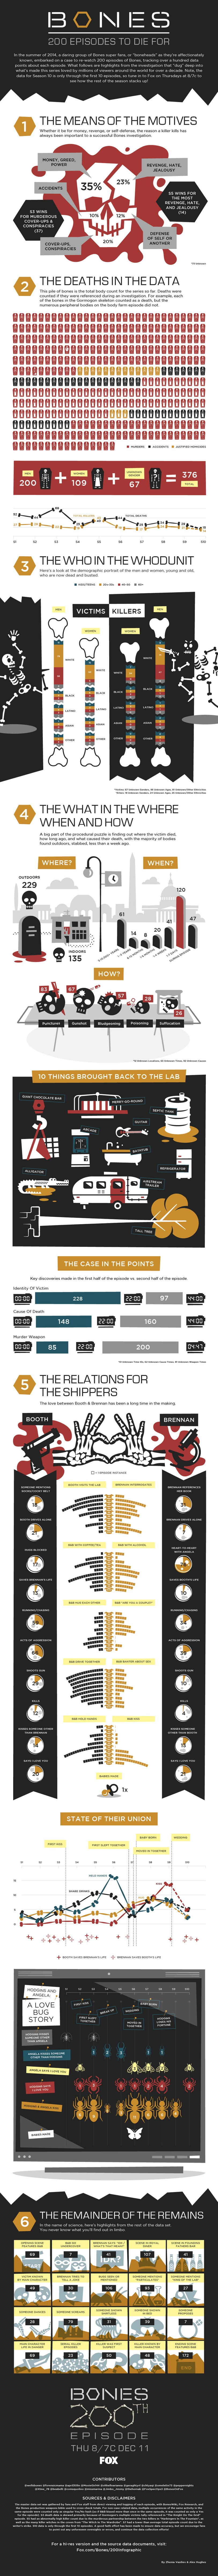 Bones-200th-Infographic-12-4-14-final